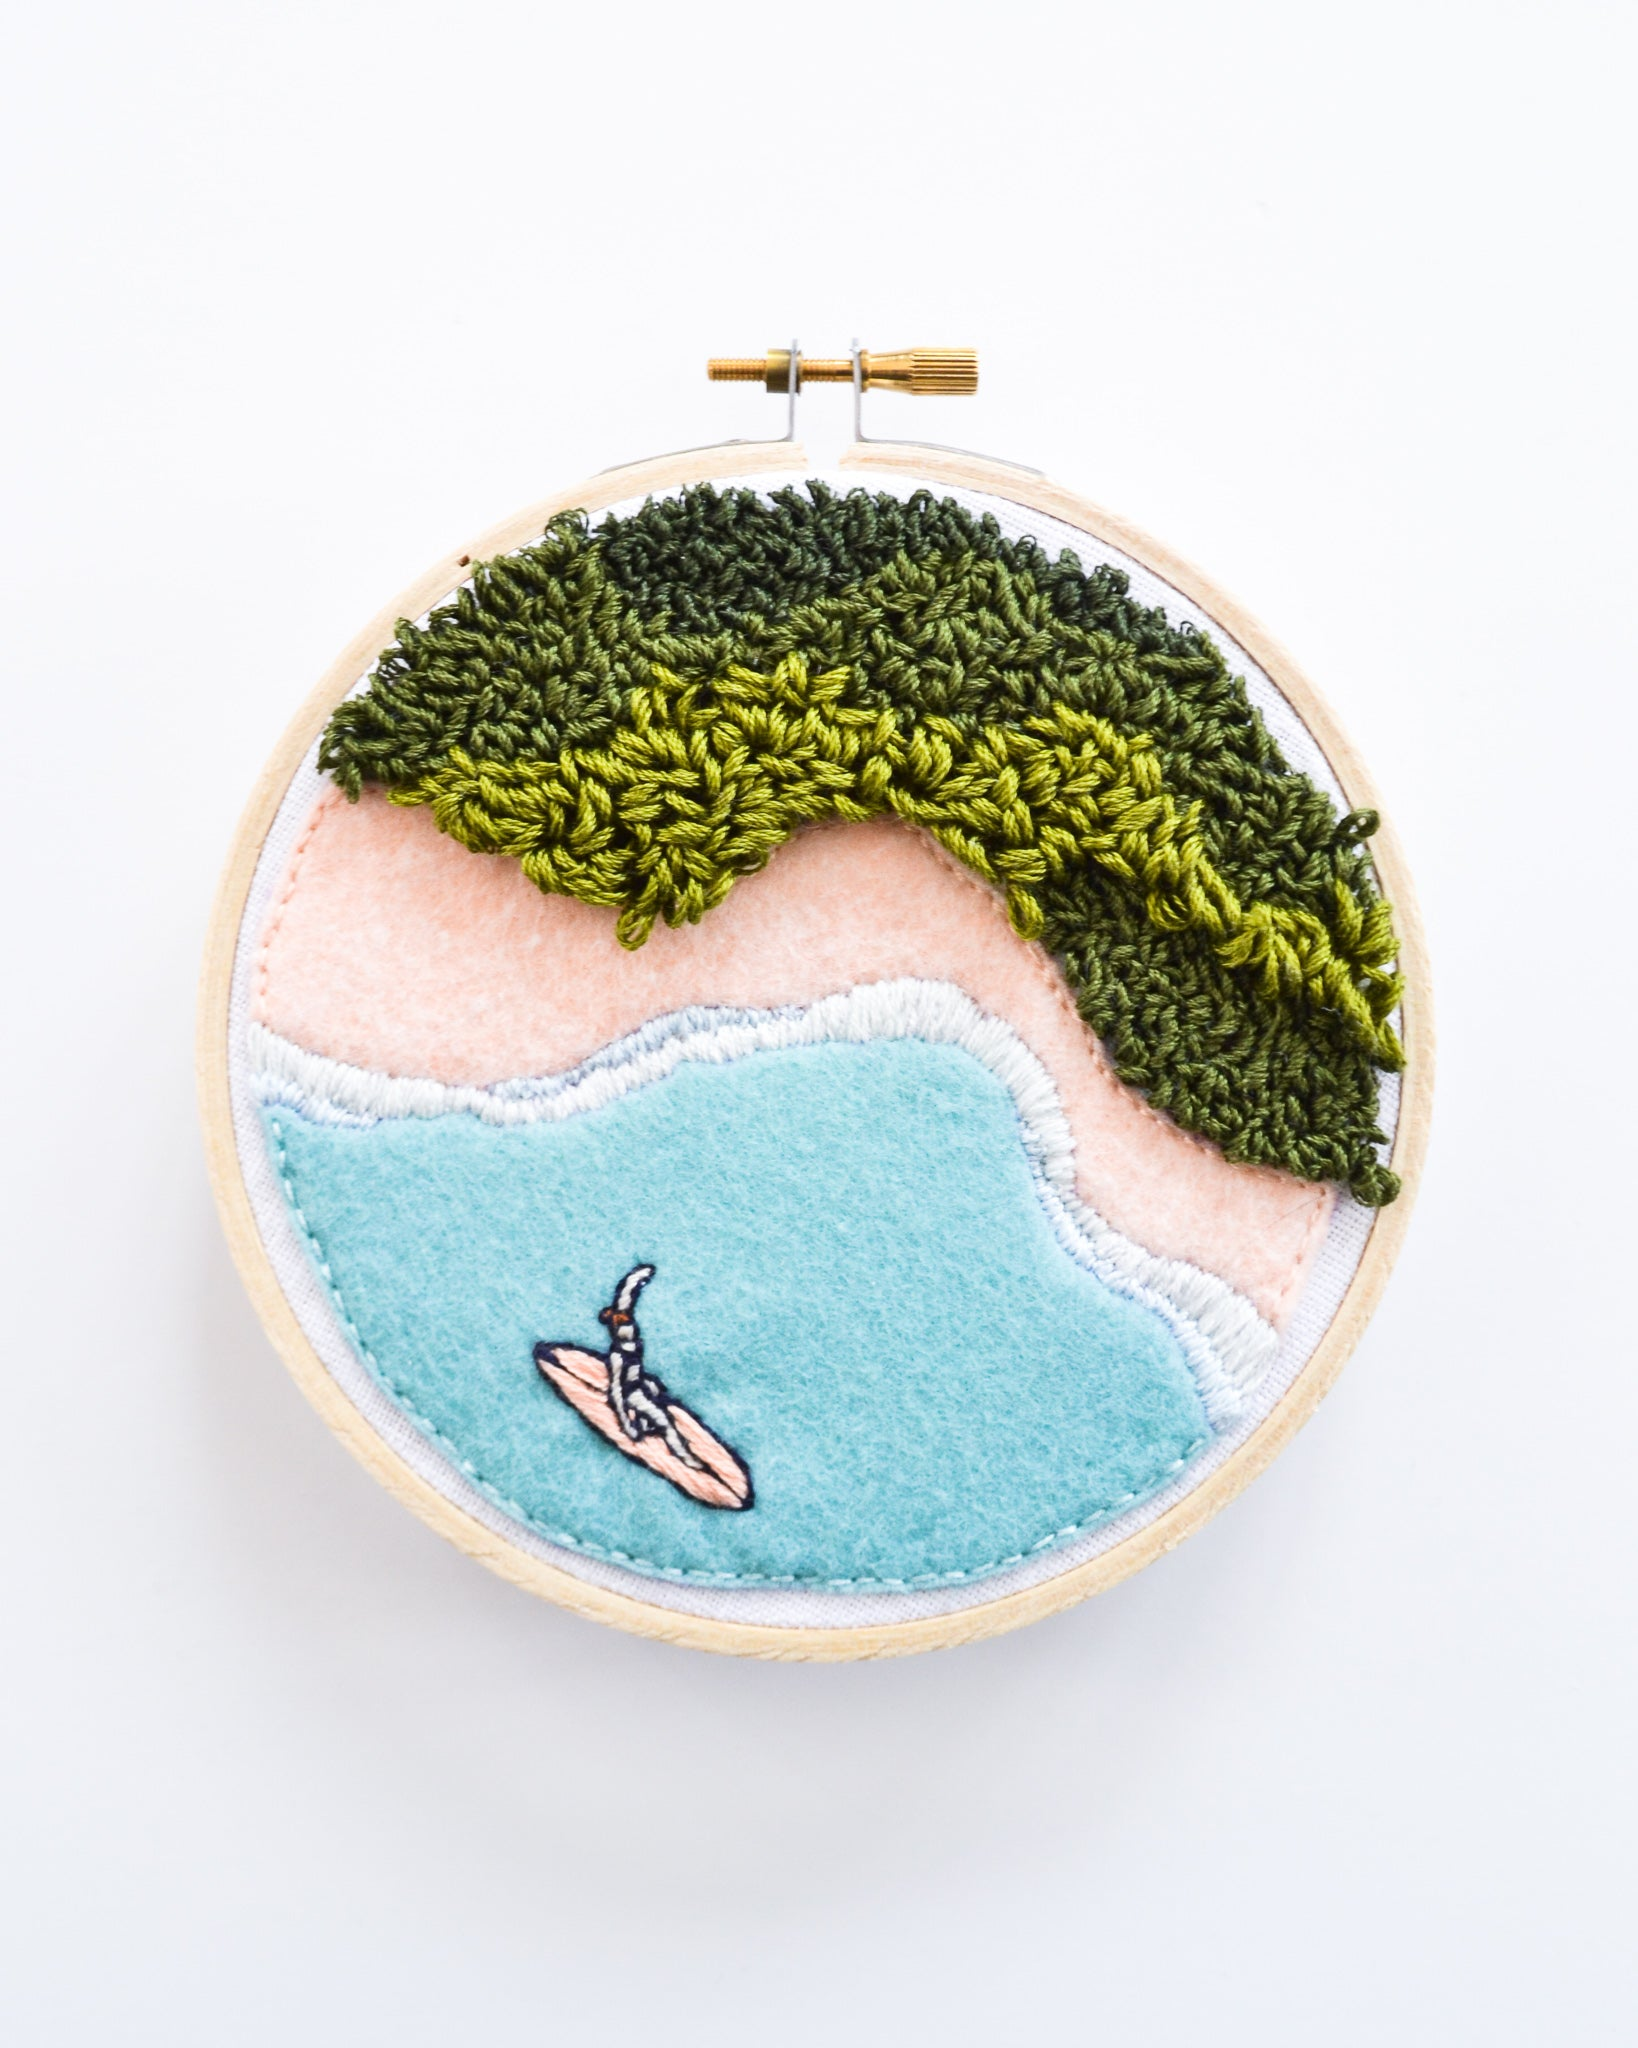 Mini Surf No. 5 Original Art - 5 in. hoop